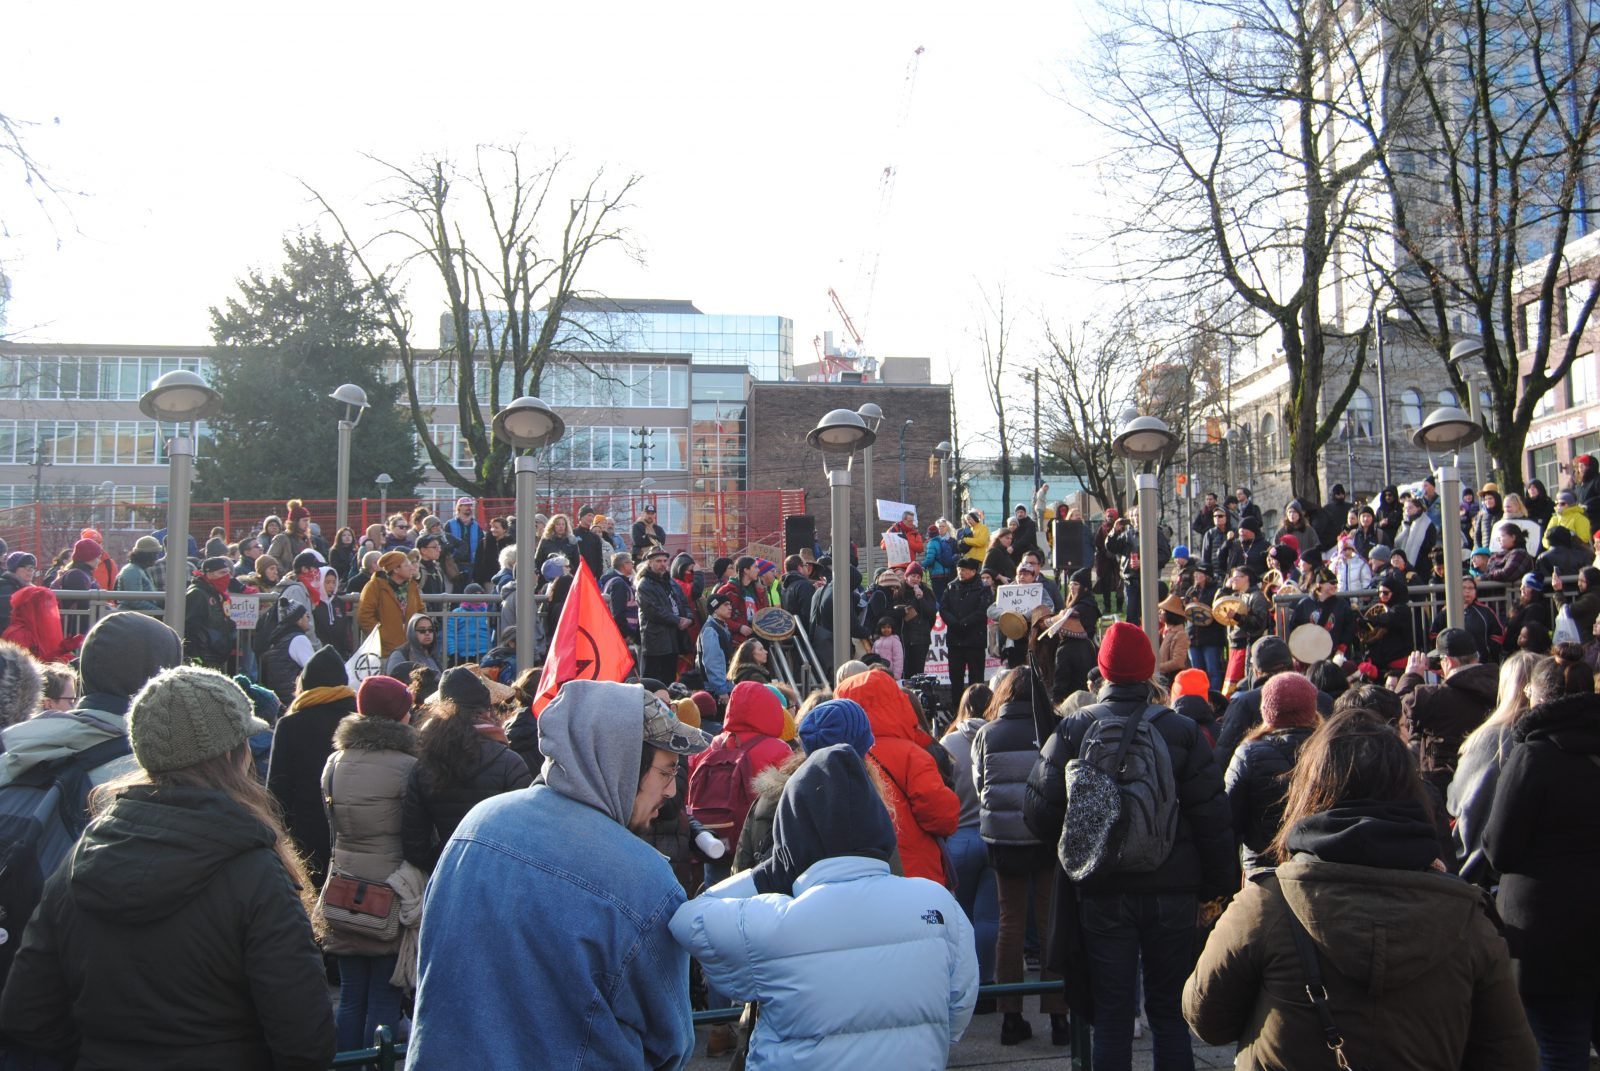 Photo: An anti-Coastal GasLink pipeline protest and solidarity with Wet'suwet'en rally takes place in Victory Square in Vancouver, BC, on January 11, 2020. By Laurel Scott.